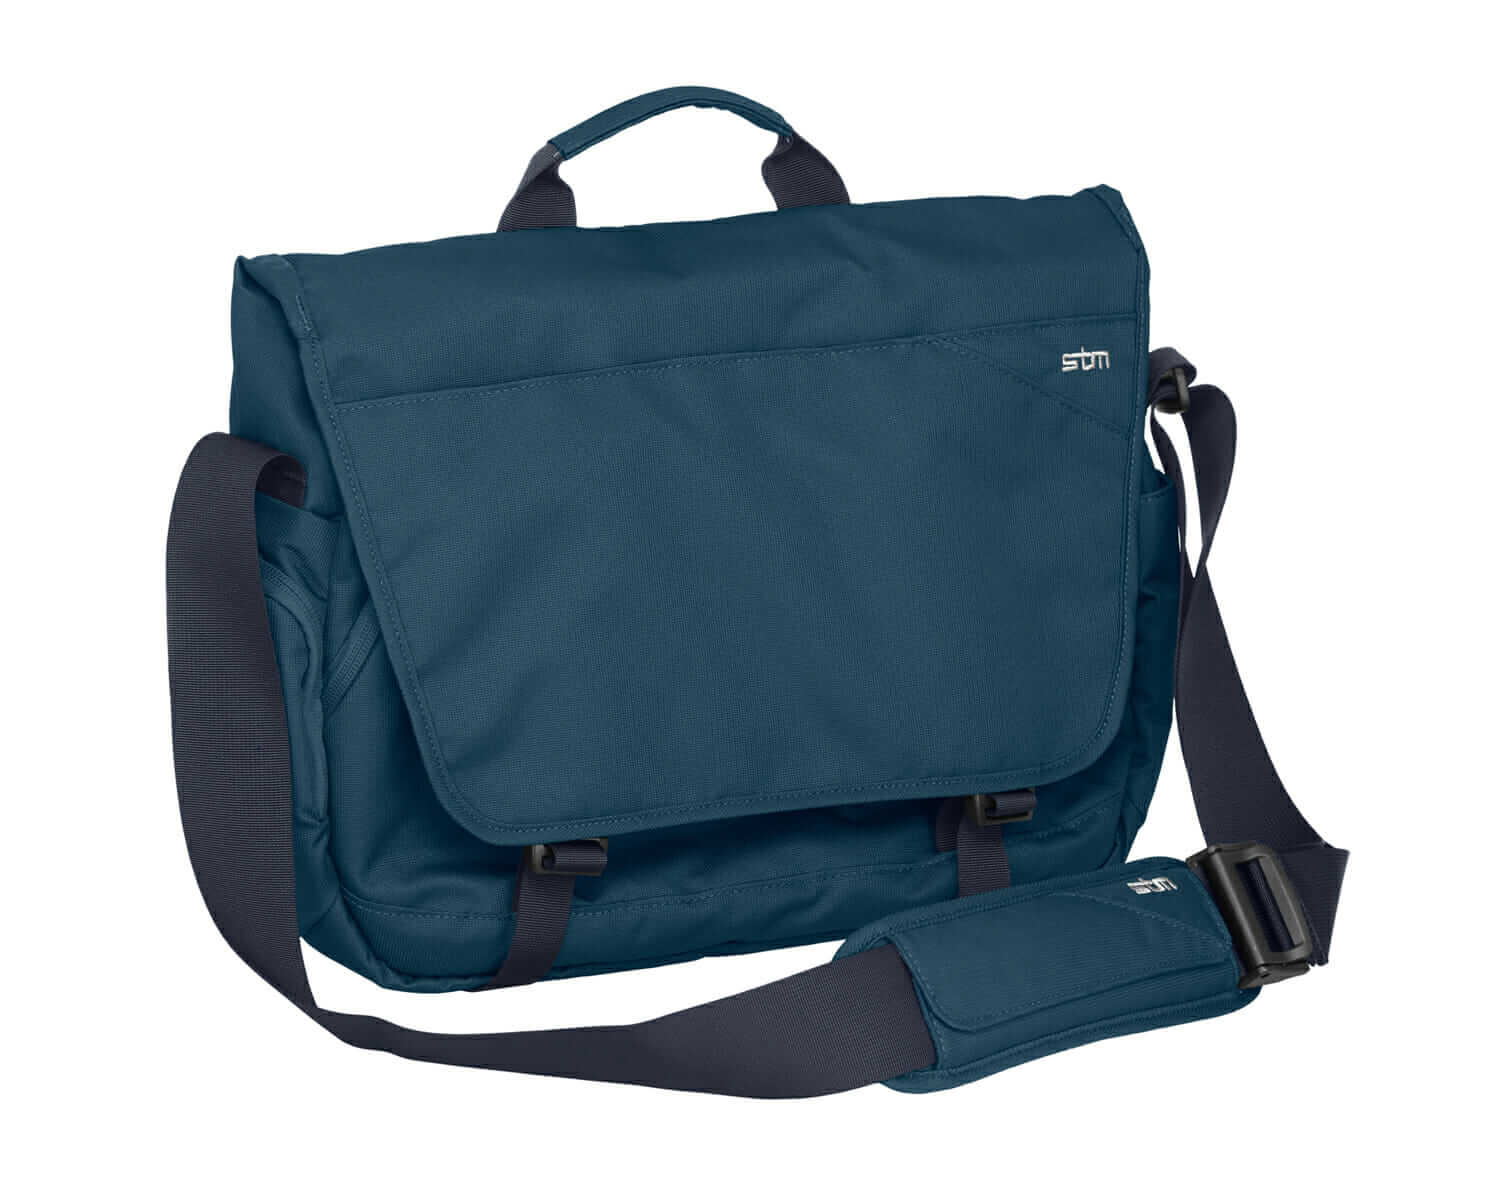 15 Laptop Messenger Bag